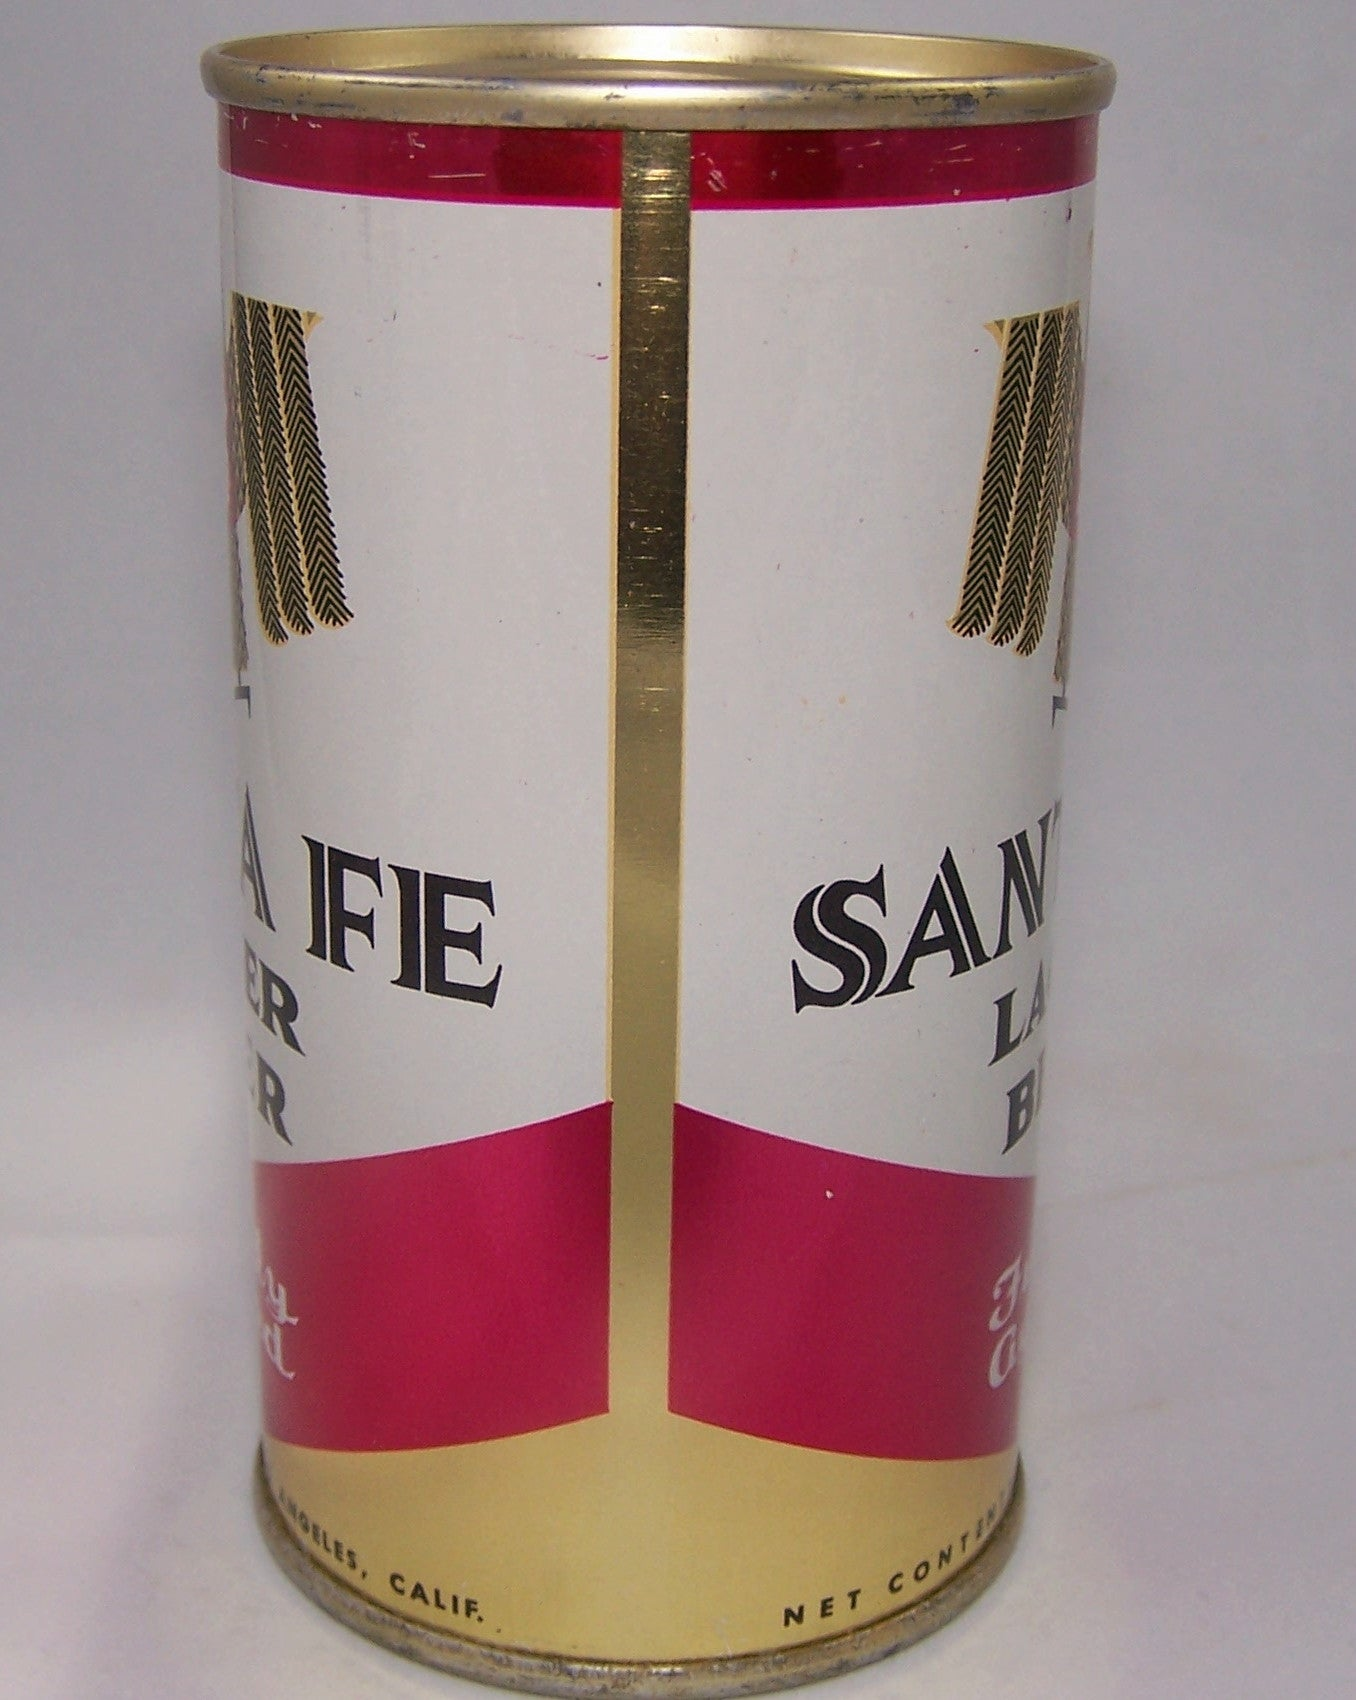 Santa Fe Lager Beer, USBC 127-17, Grade A1+ Sold on 8/10/15